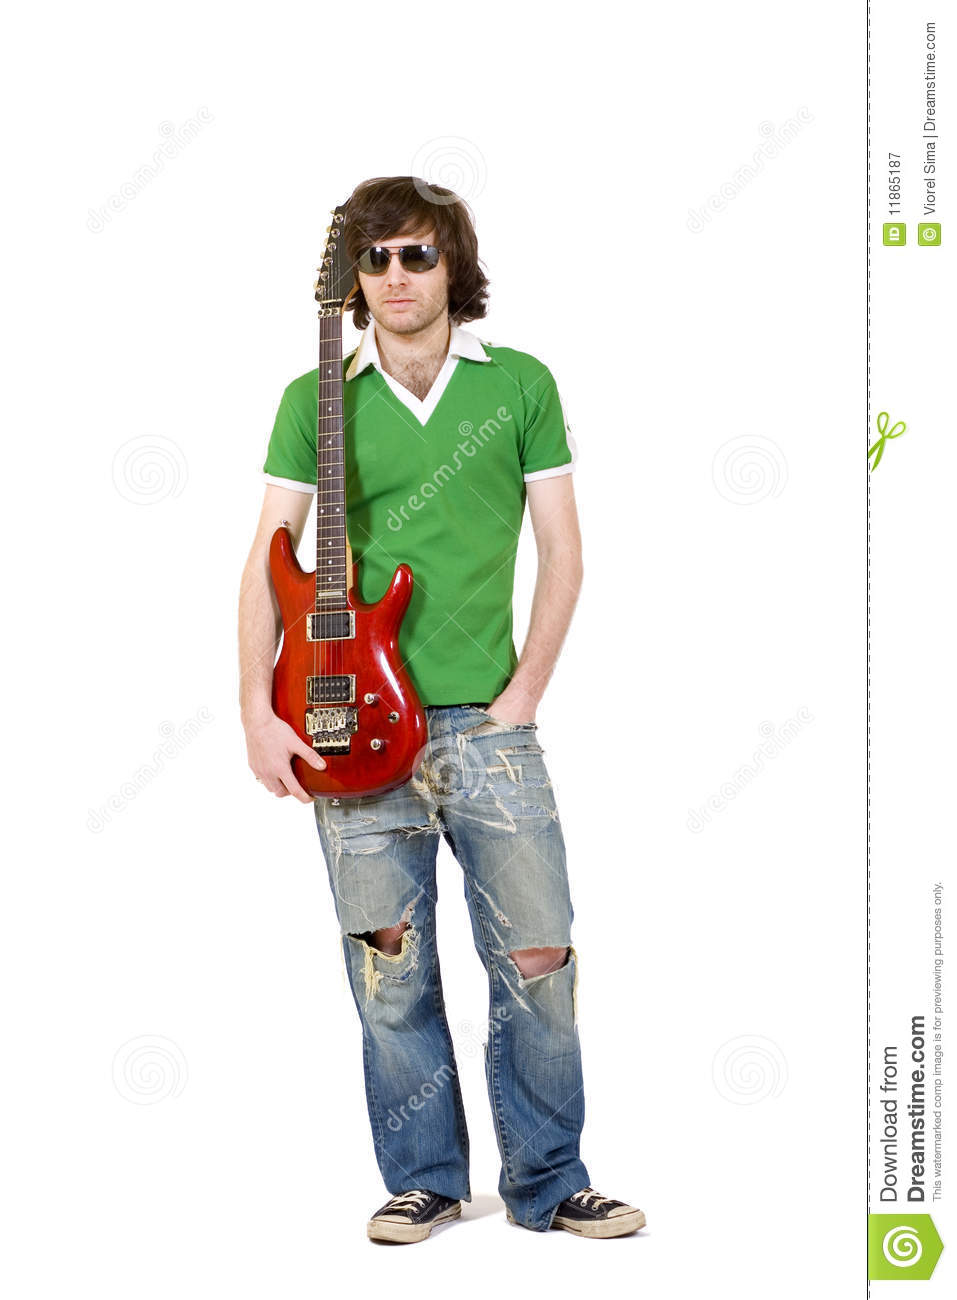 trendy guy holding an electric guitar stock image image of cool model 11865187. Black Bedroom Furniture Sets. Home Design Ideas